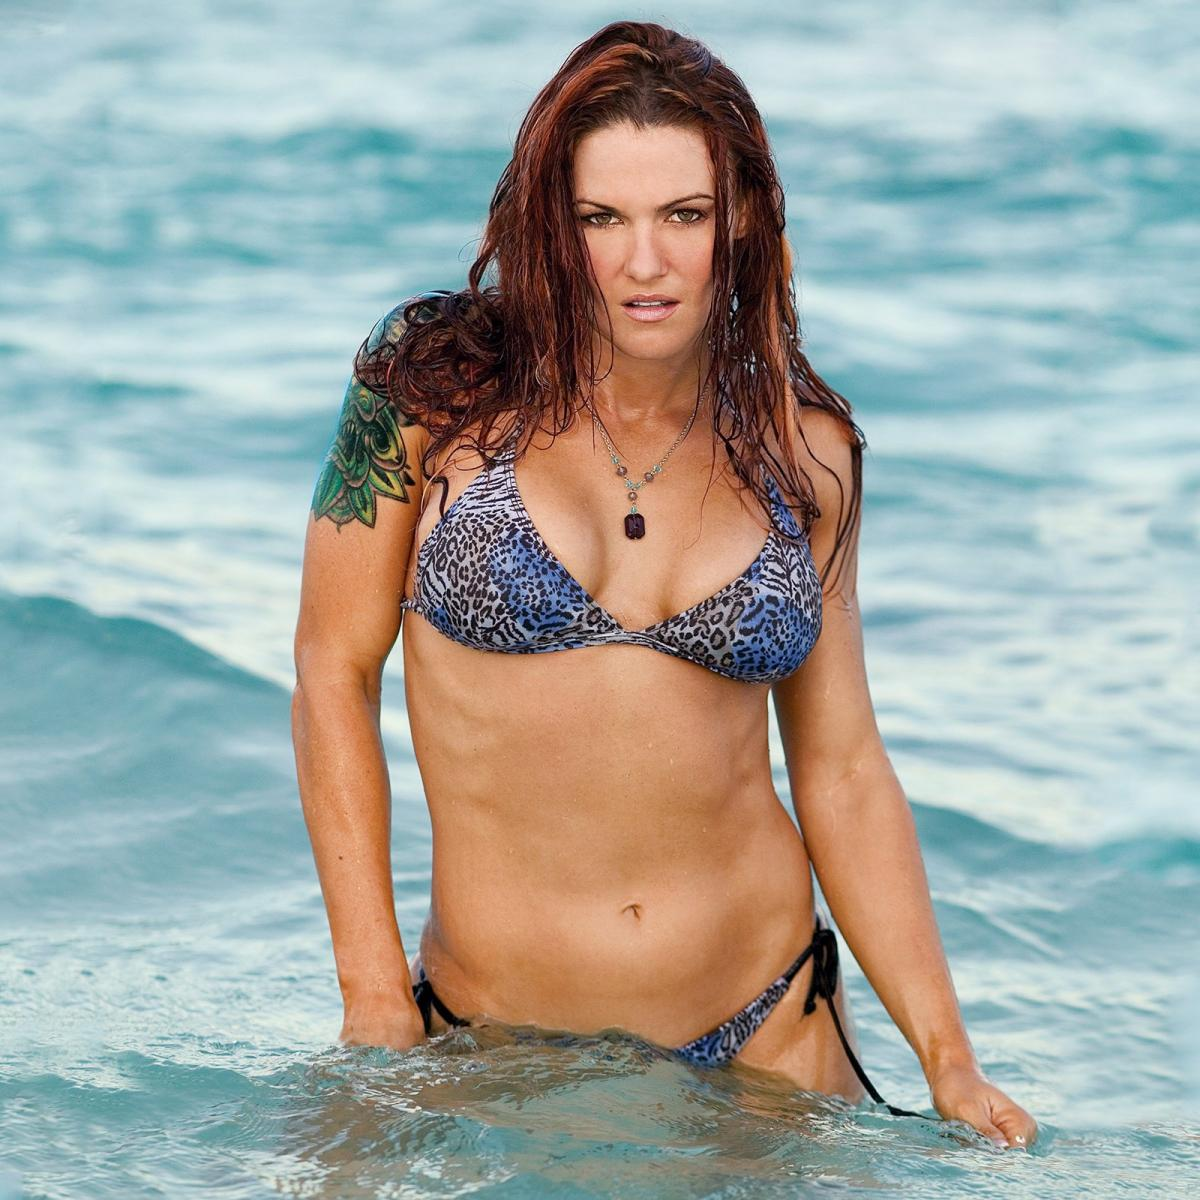 lita in the water